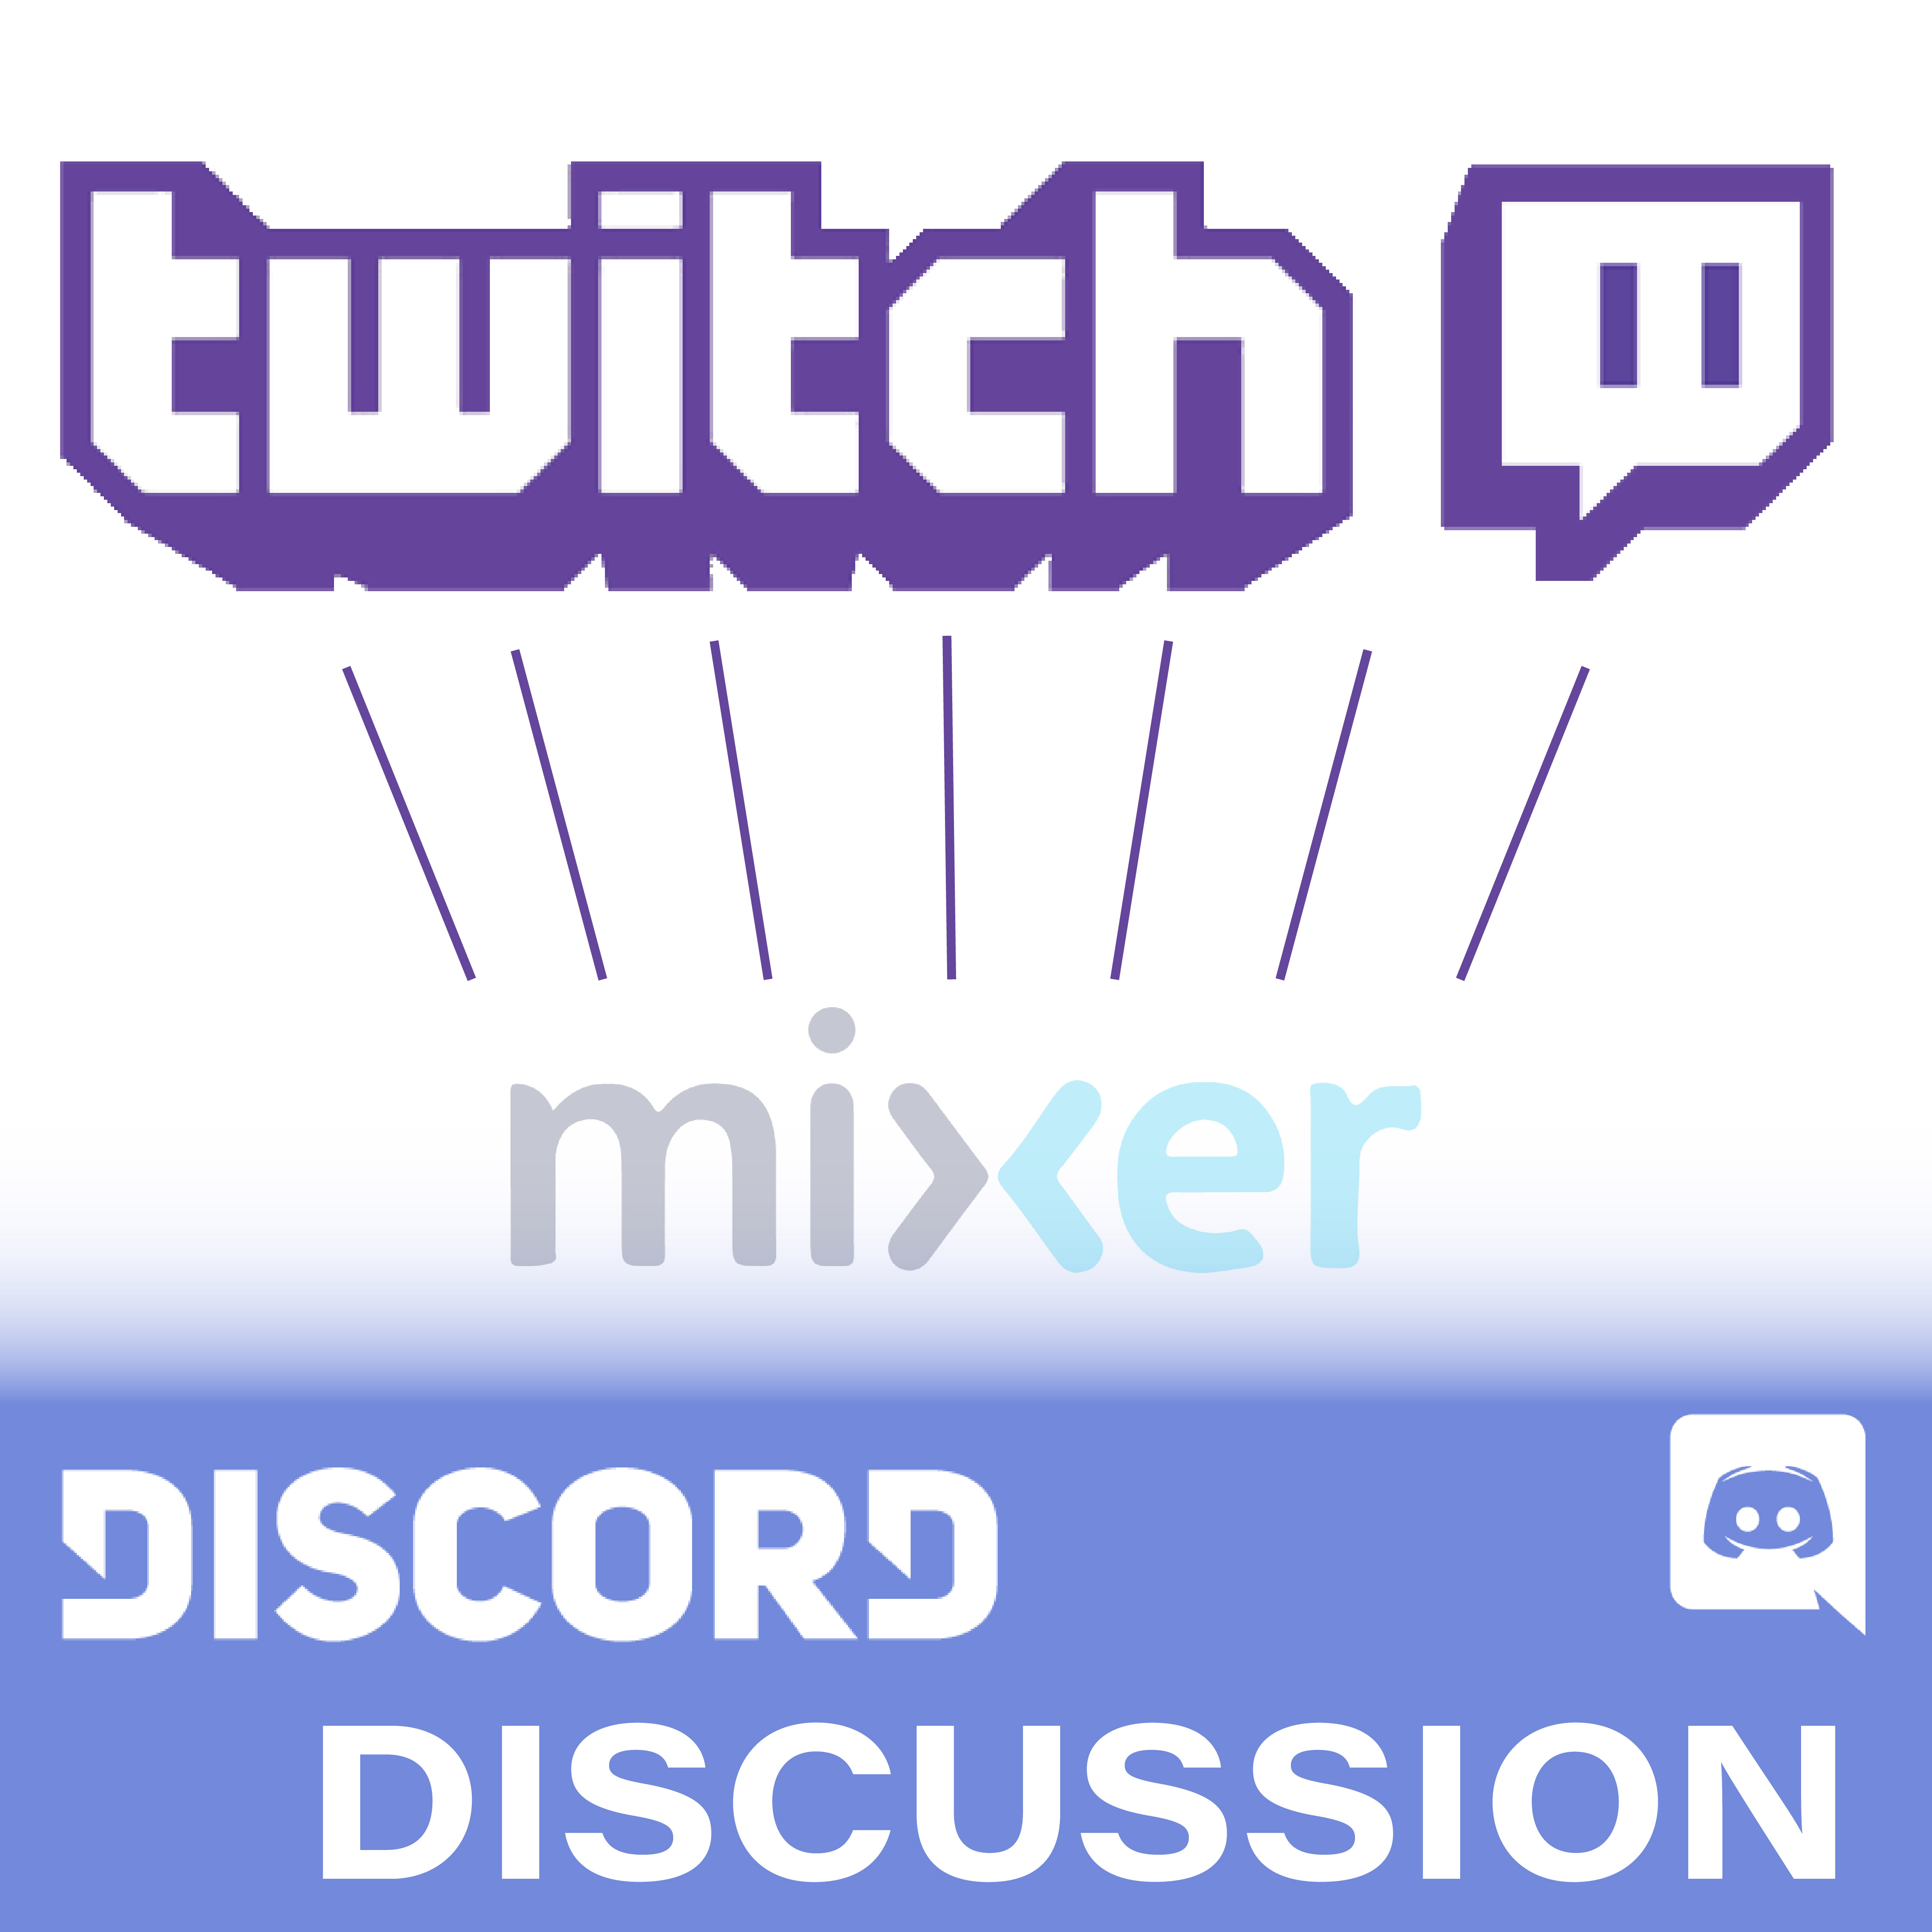 Discord Discussion Mixer is Gone